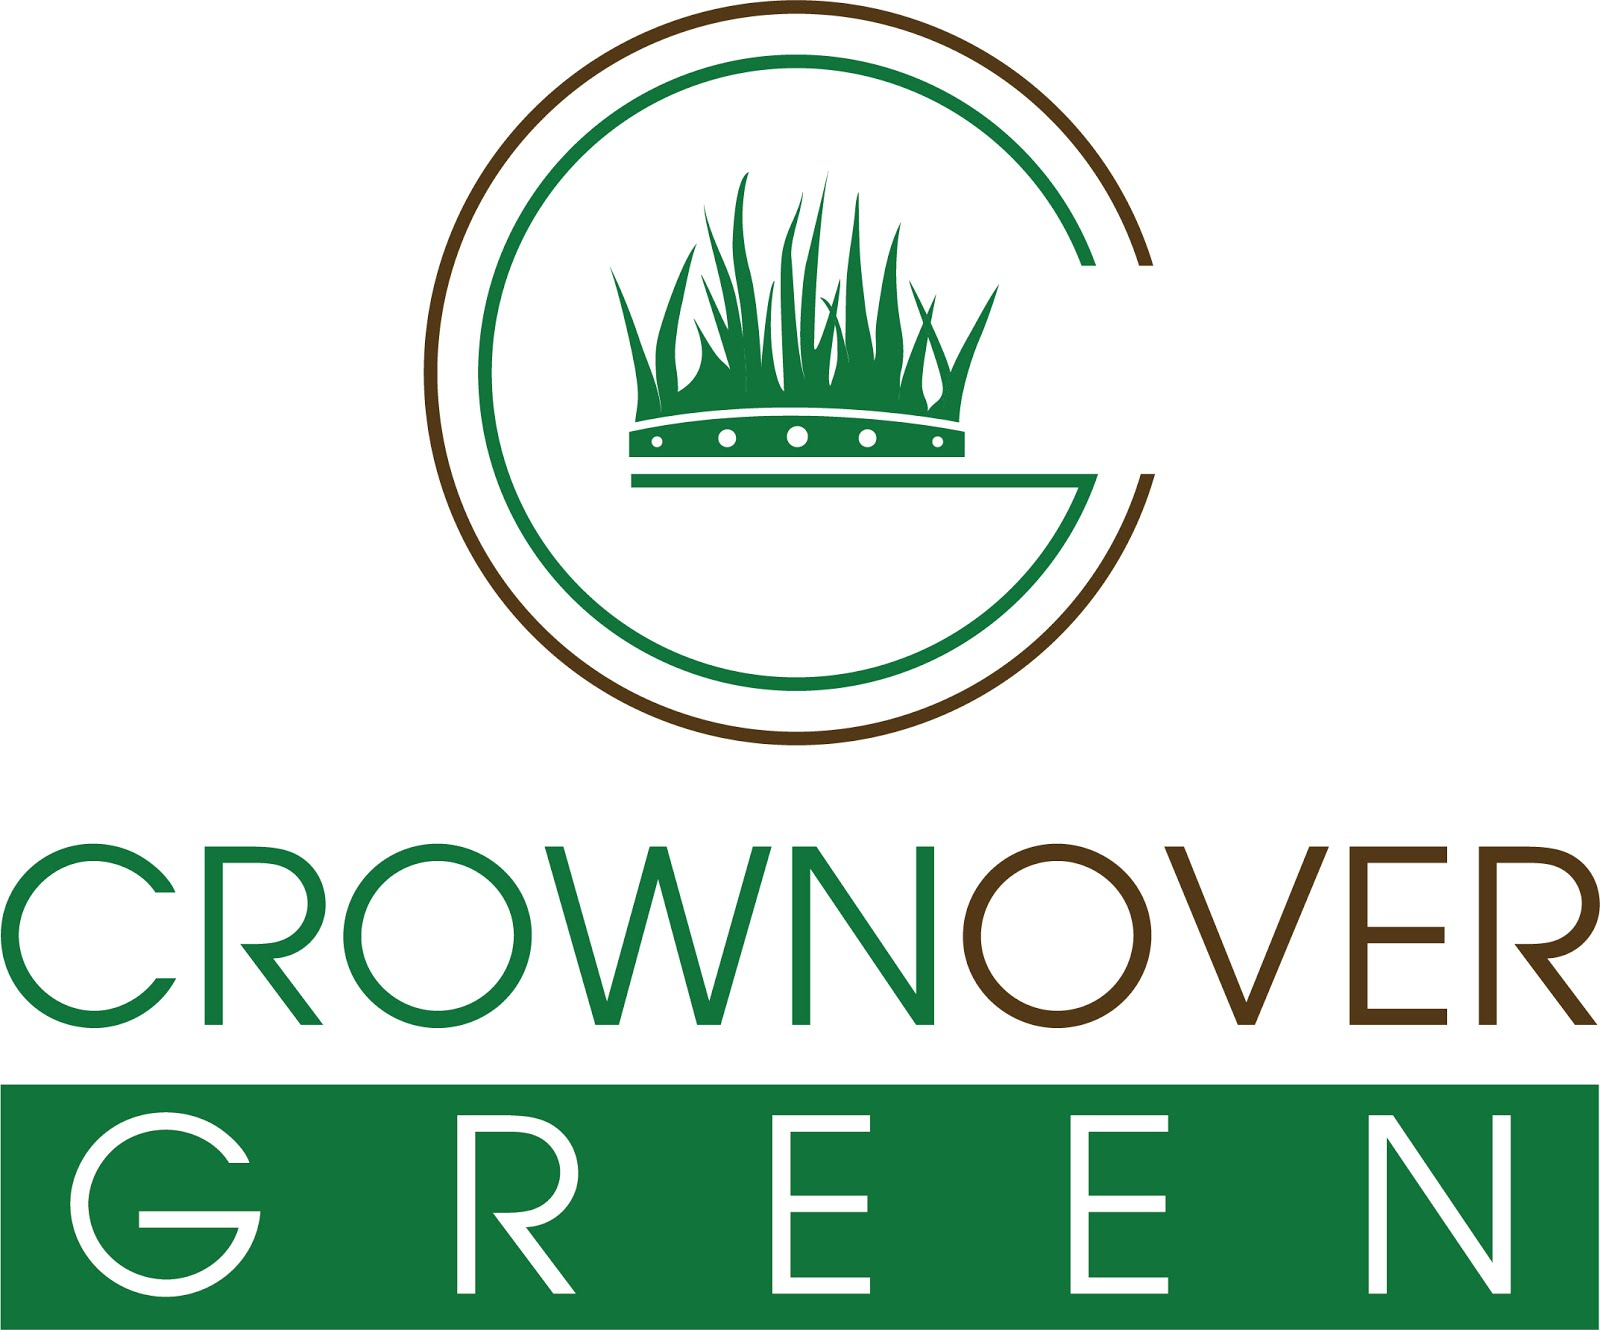 go to crownovergreen.com